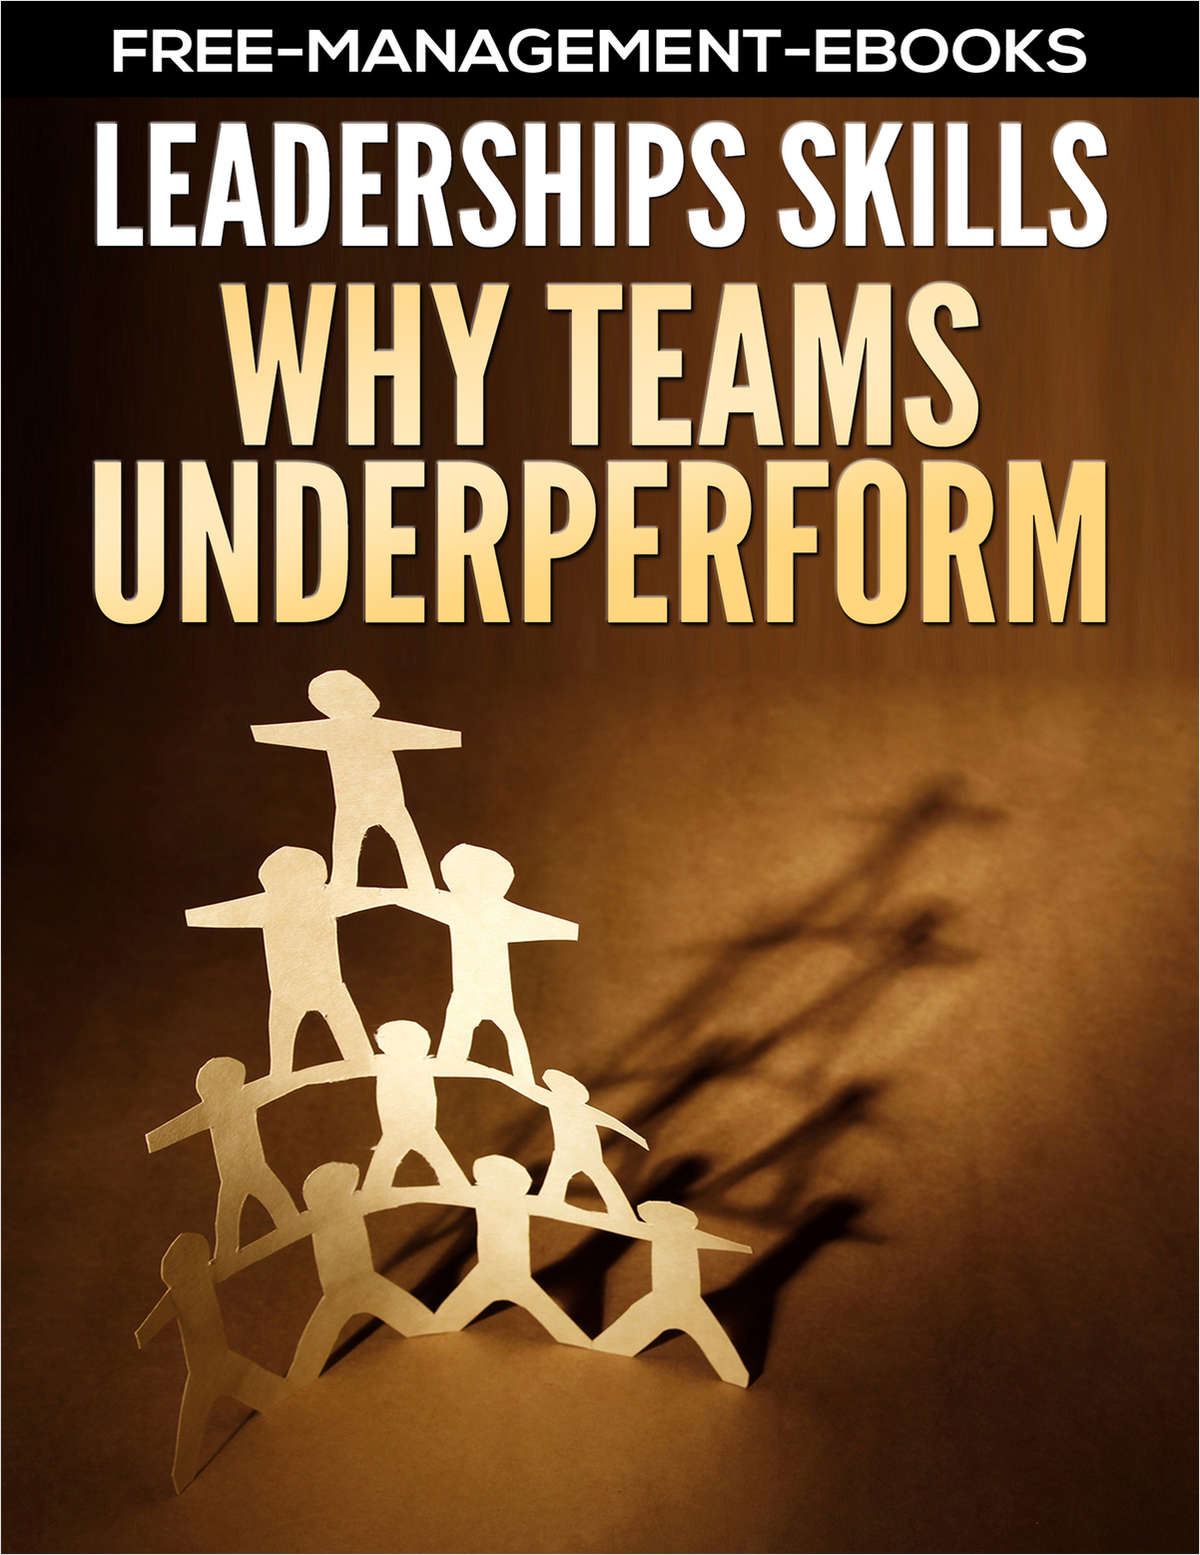 Why Teams Underperform - Developing Your Leadership Skills